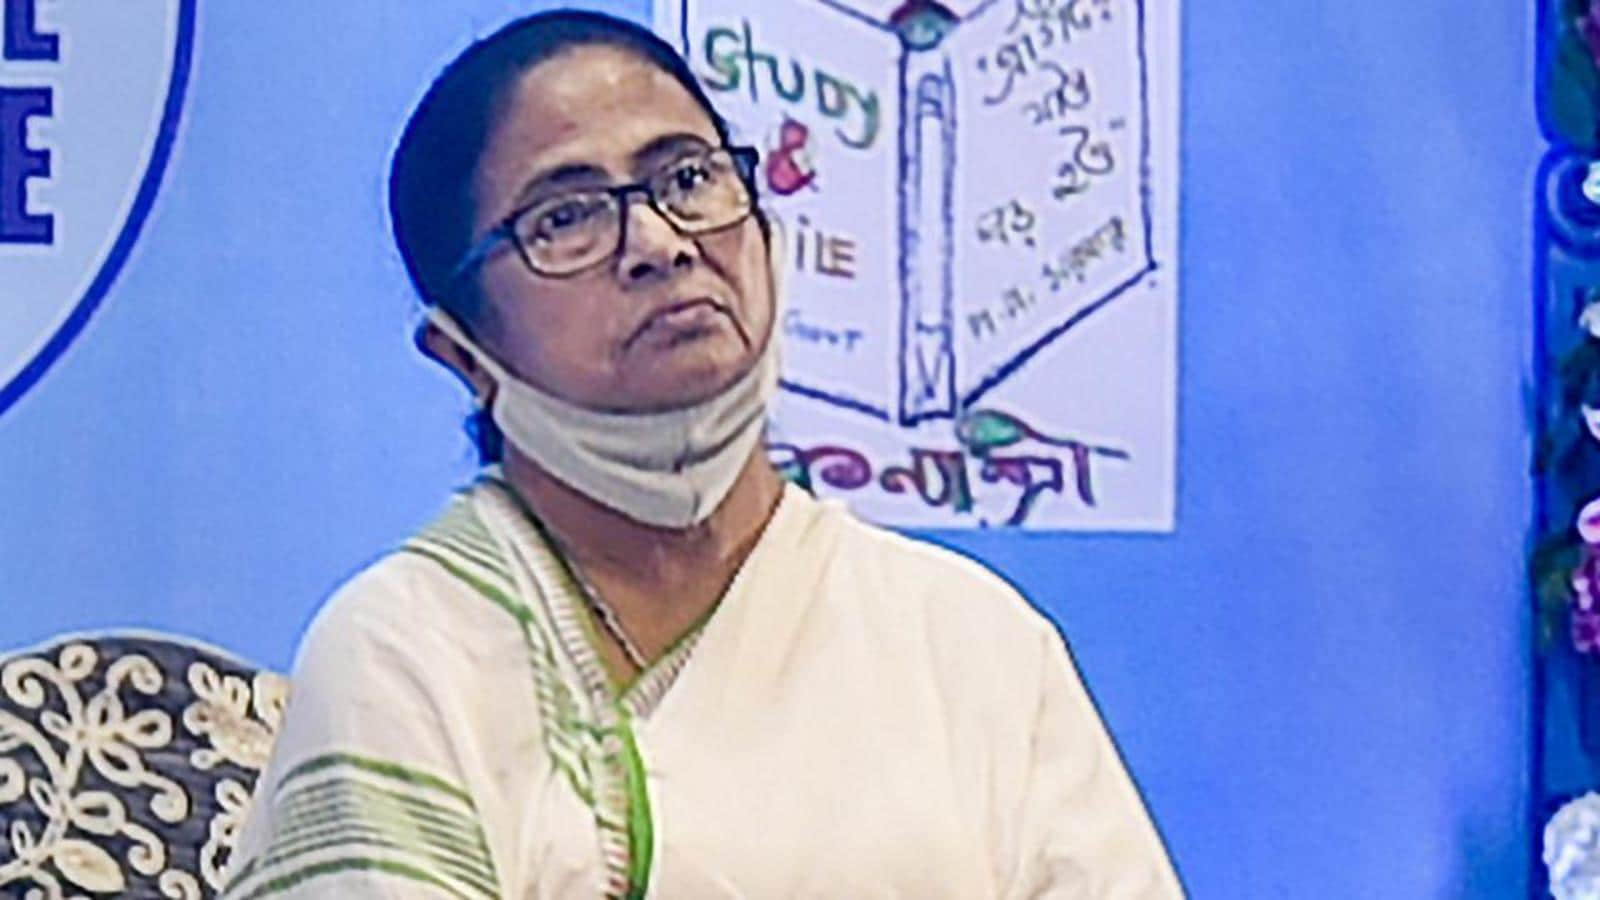 Bengal BJP sends 6 names to fight Mamata Banerjee in Bhabanipur bypoll